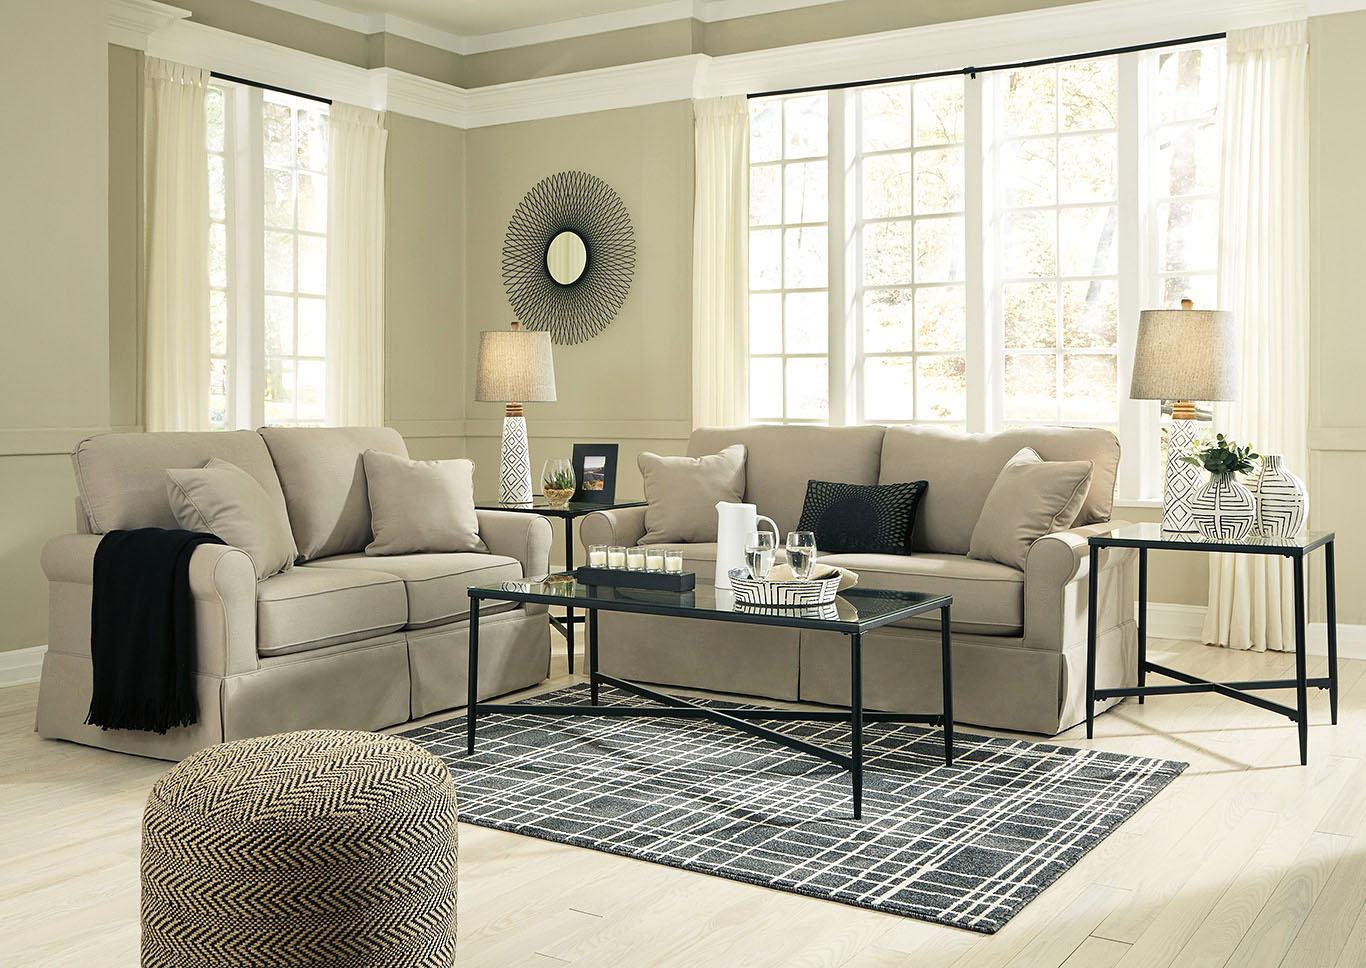 Senchal Stone Sofa & Loveseat,Signature Design By Ashley